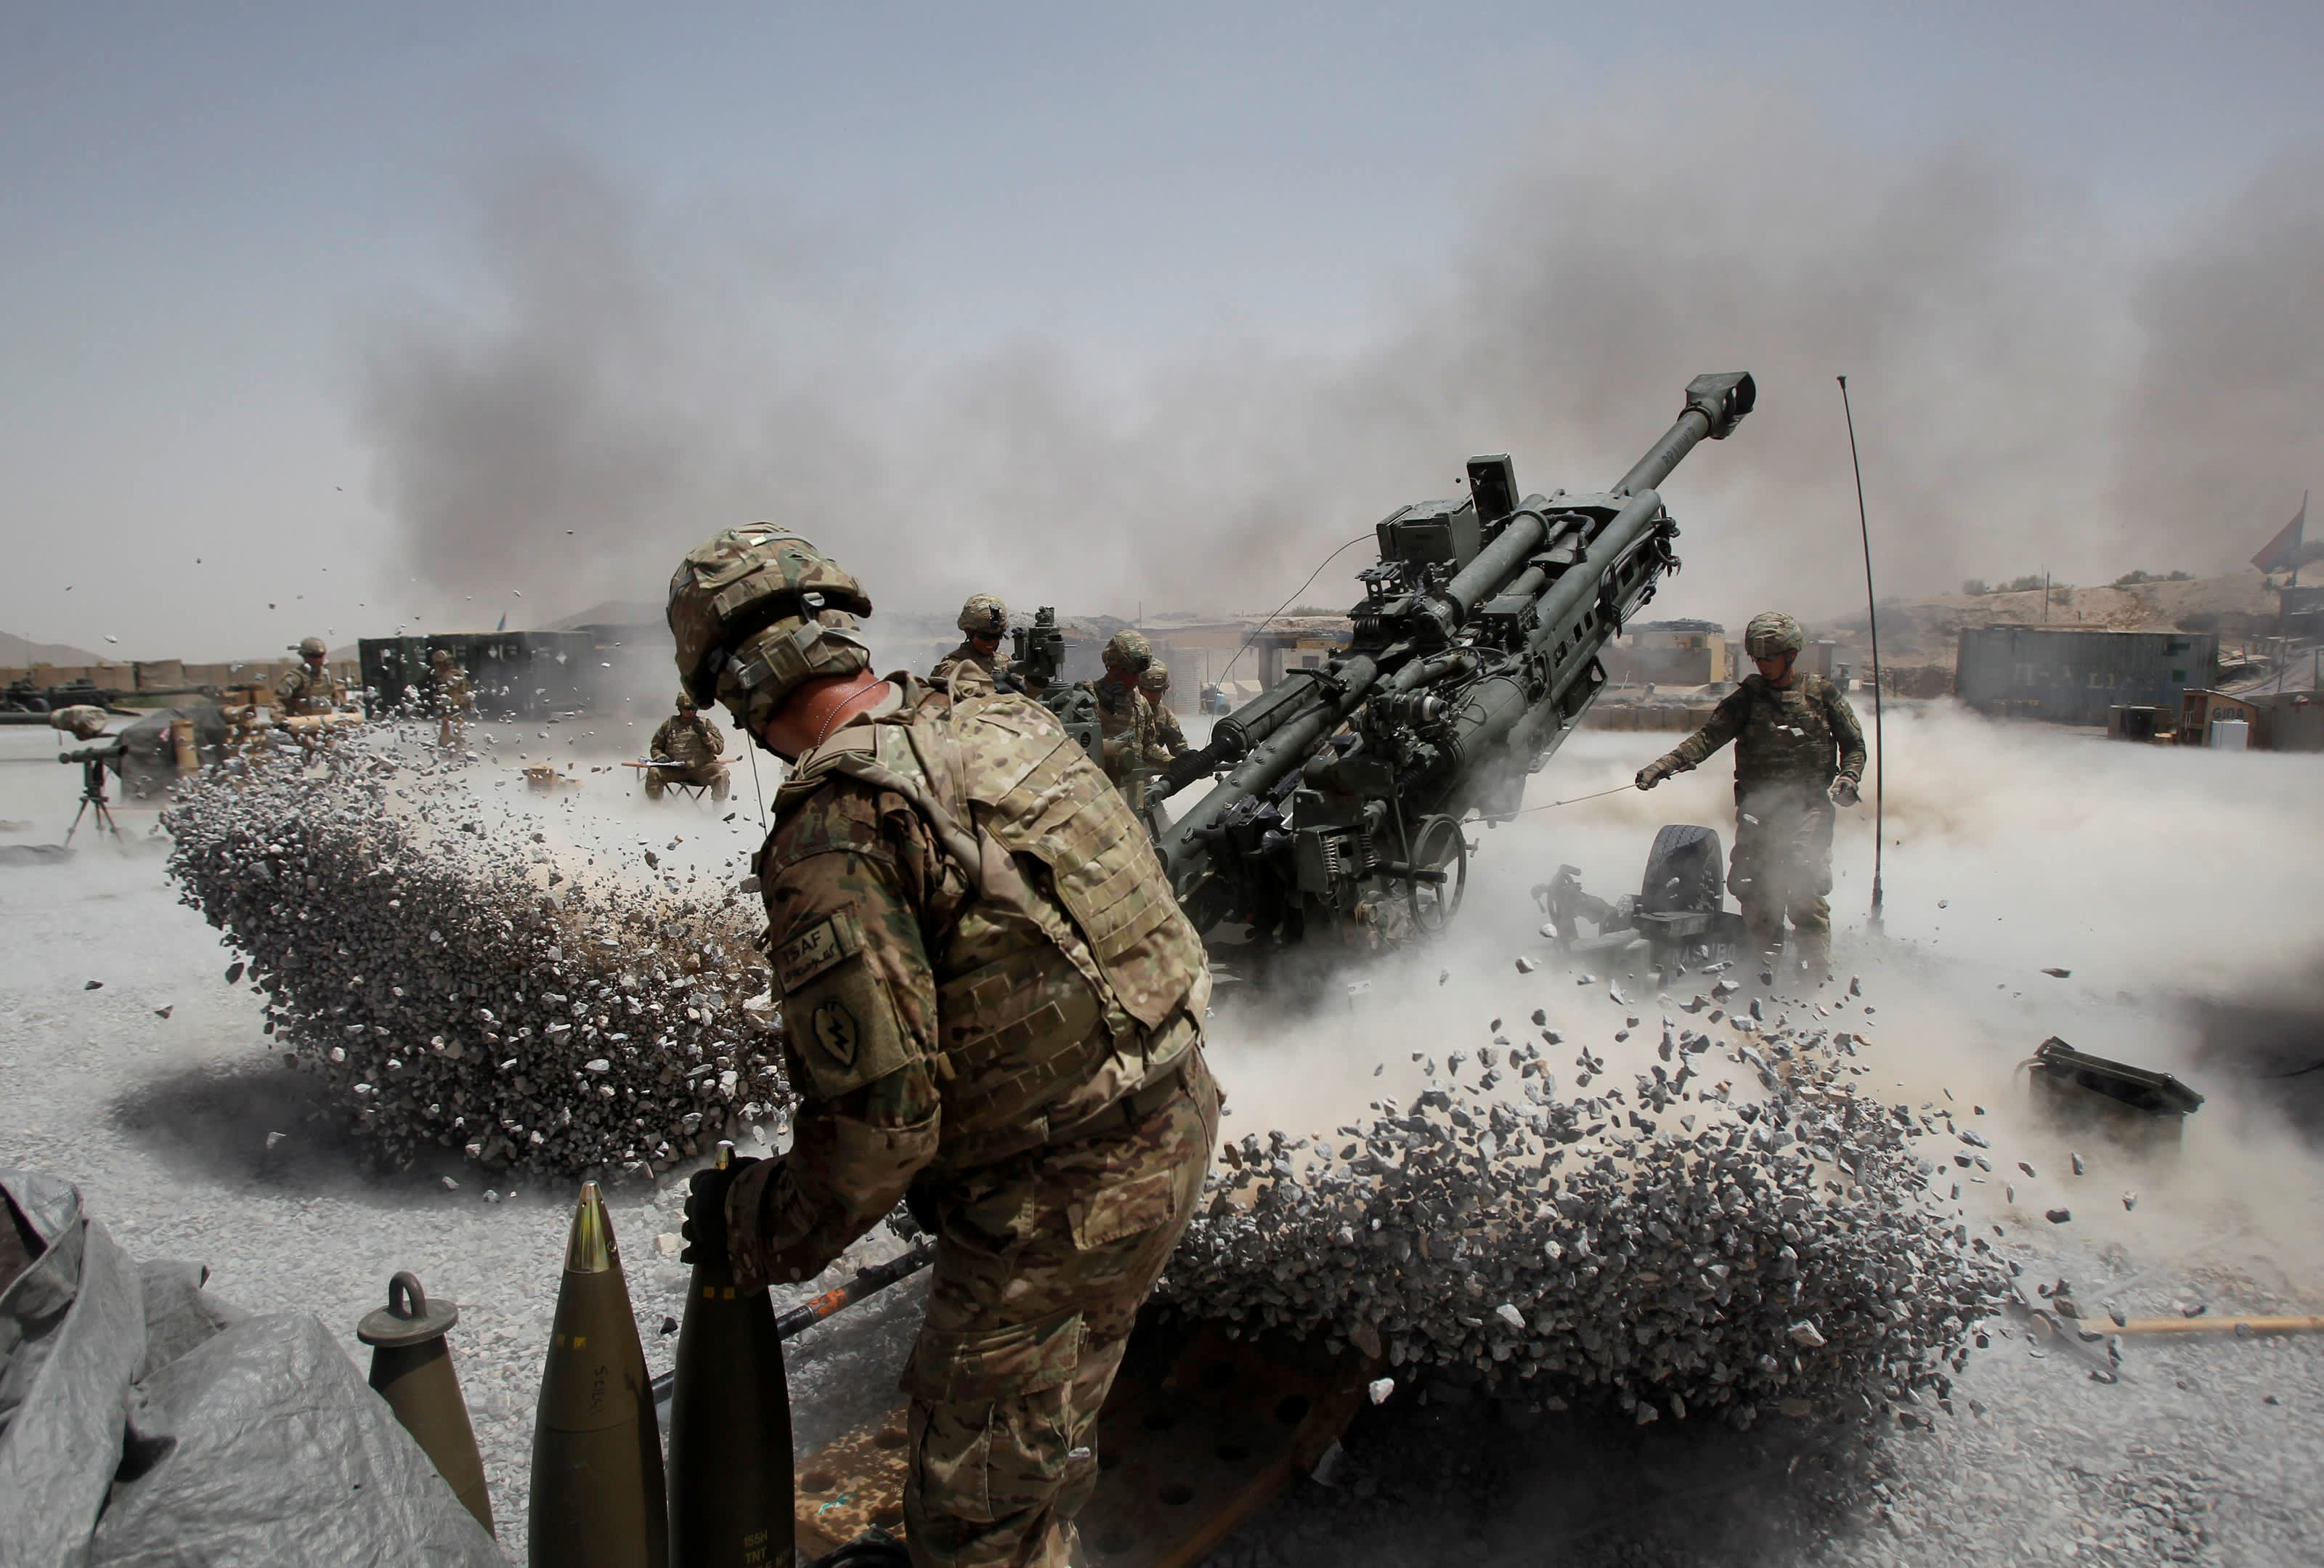 Former NATO commander worries U.S. troop pullout from Afghanistan 'will cause a collapse'